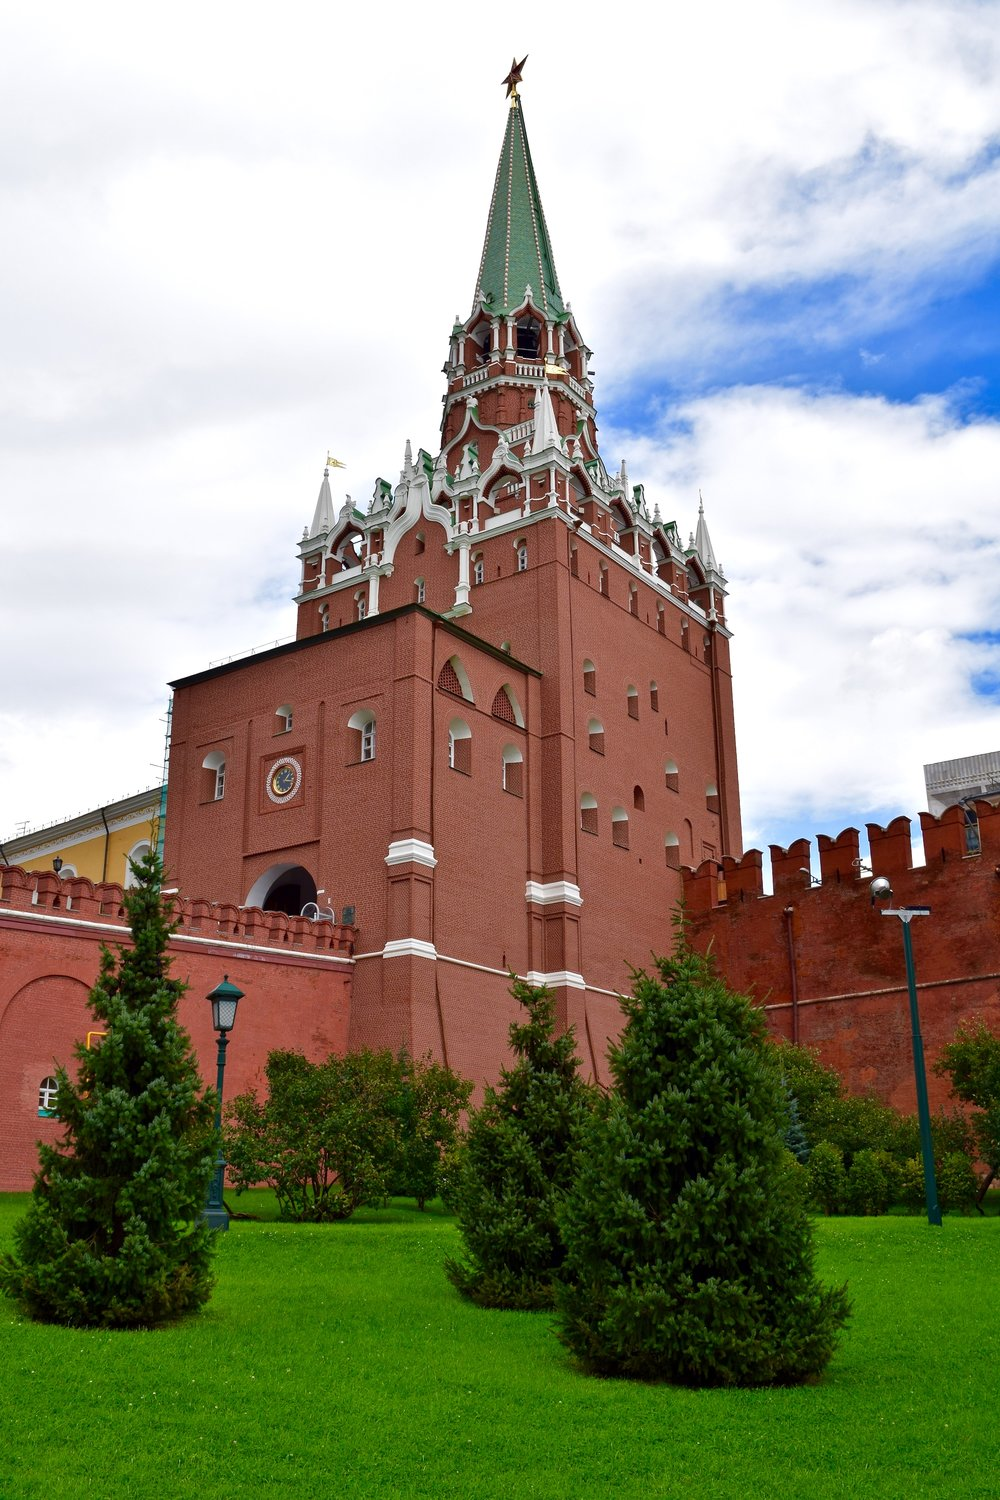 Entrance to the Kremlin